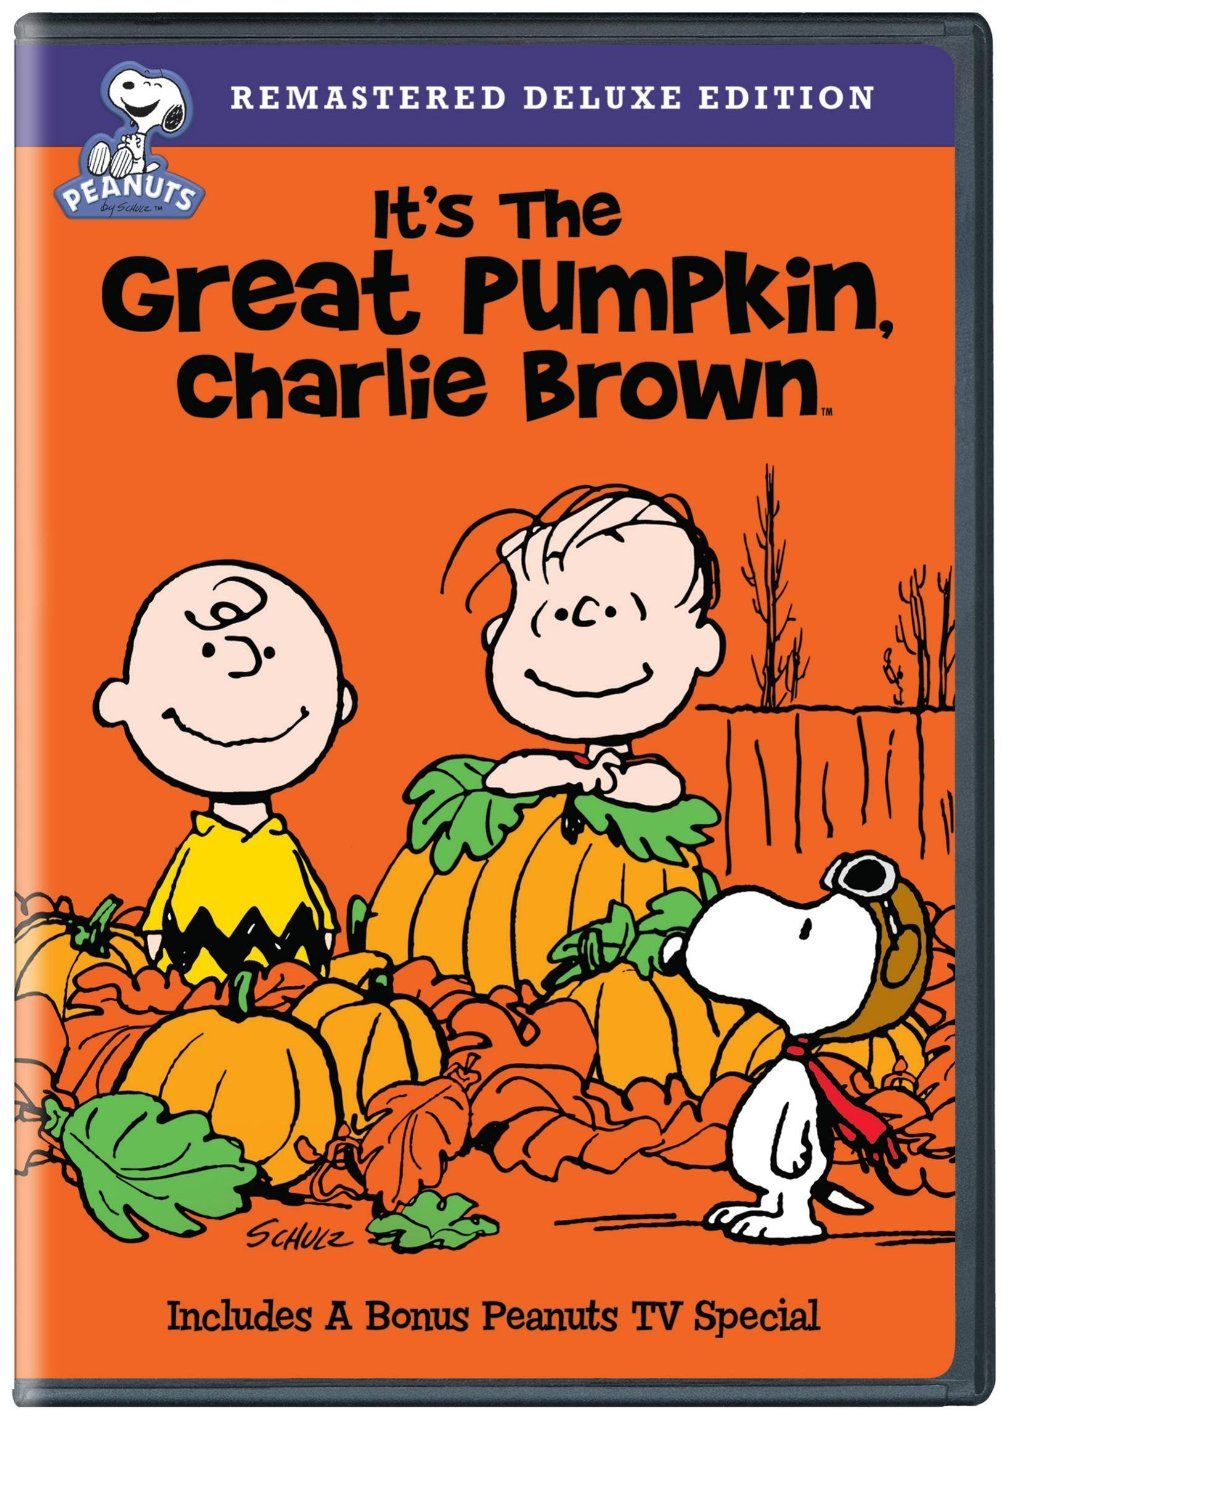 It's The Great Pumpkin Charlie Brown Quotes Amazon It's The Great Pumpkin Charlie Brown Remastered